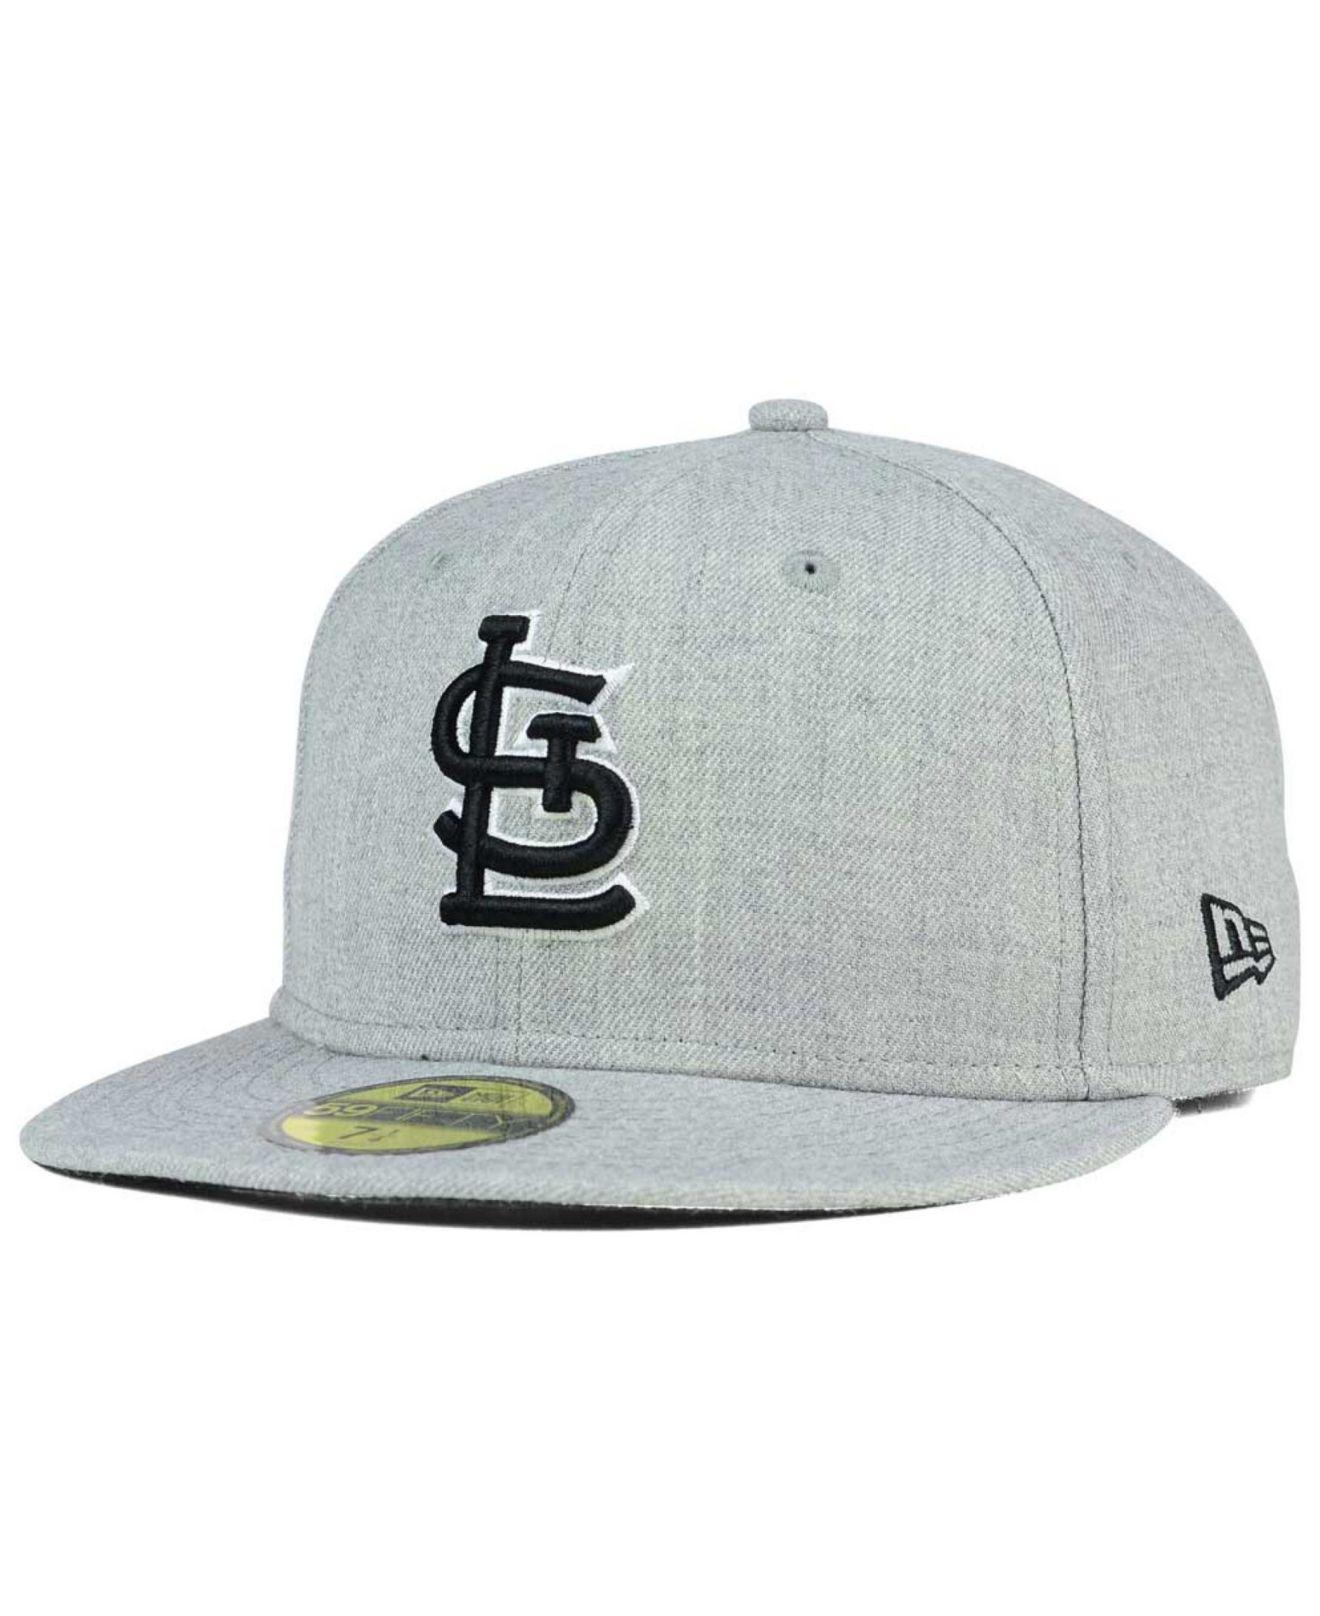 official photos 34840 8f039 KTZ - Gray St. Louis Cardinals Heather Black White 59fifty Cap for Men -  Lyst. View fullscreen